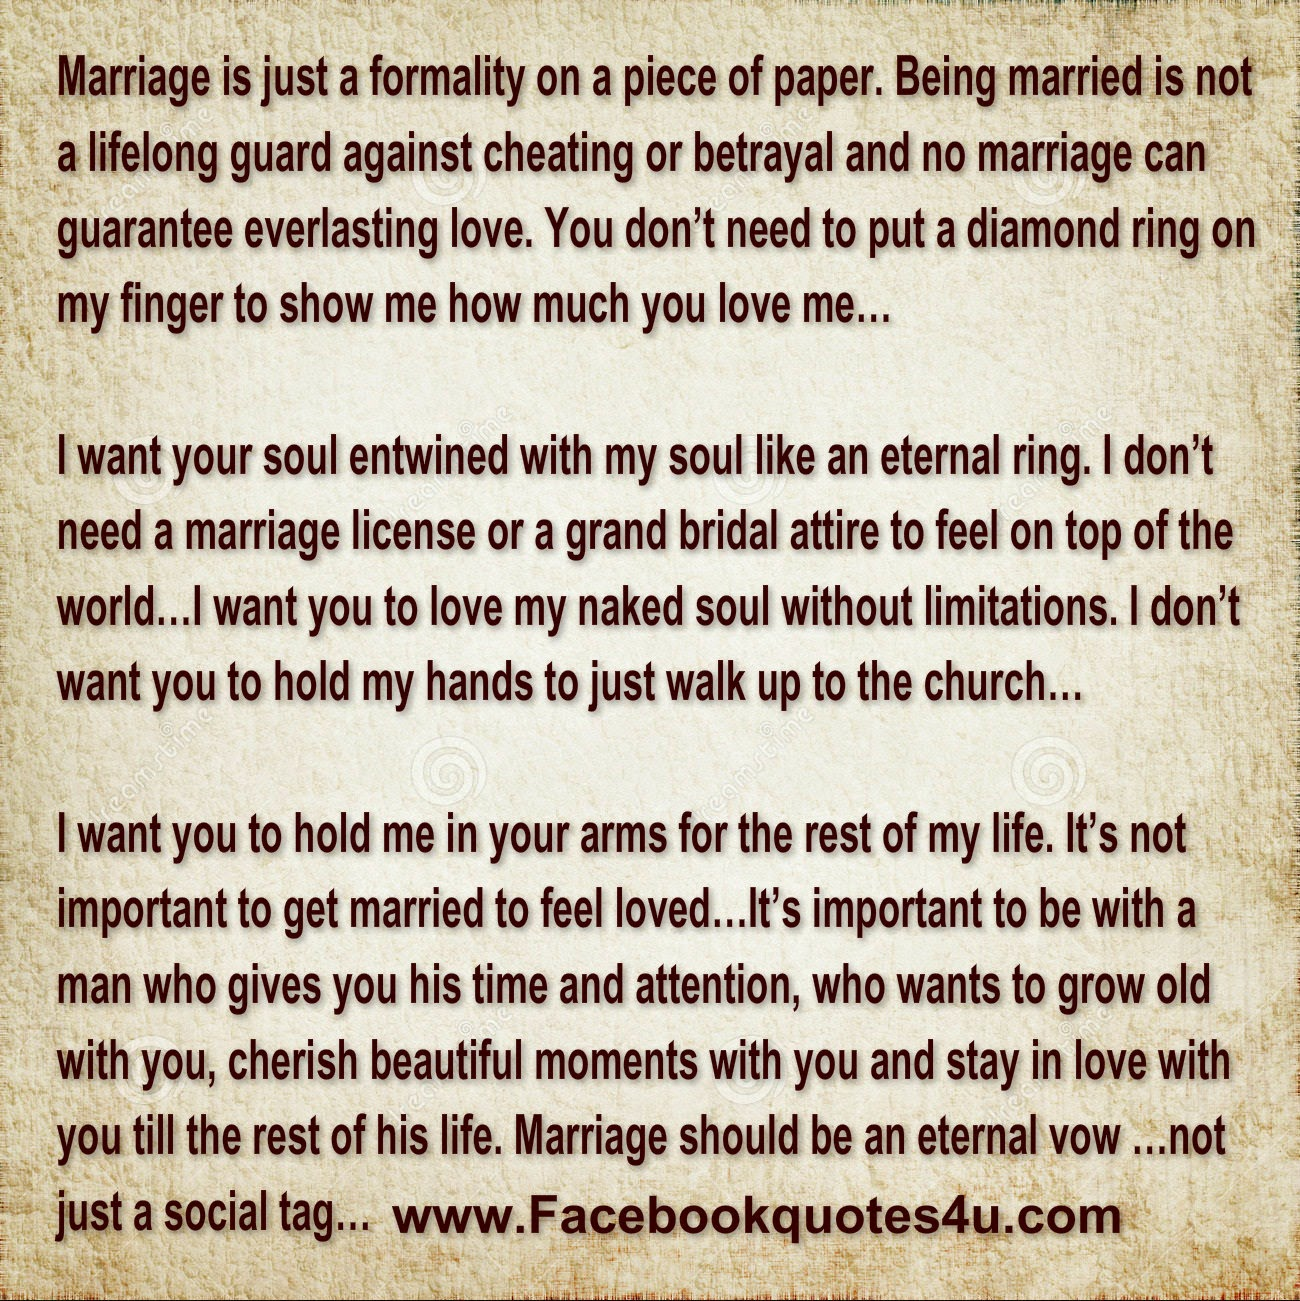 Quotes On Cheating In Marriage. QuotesGram